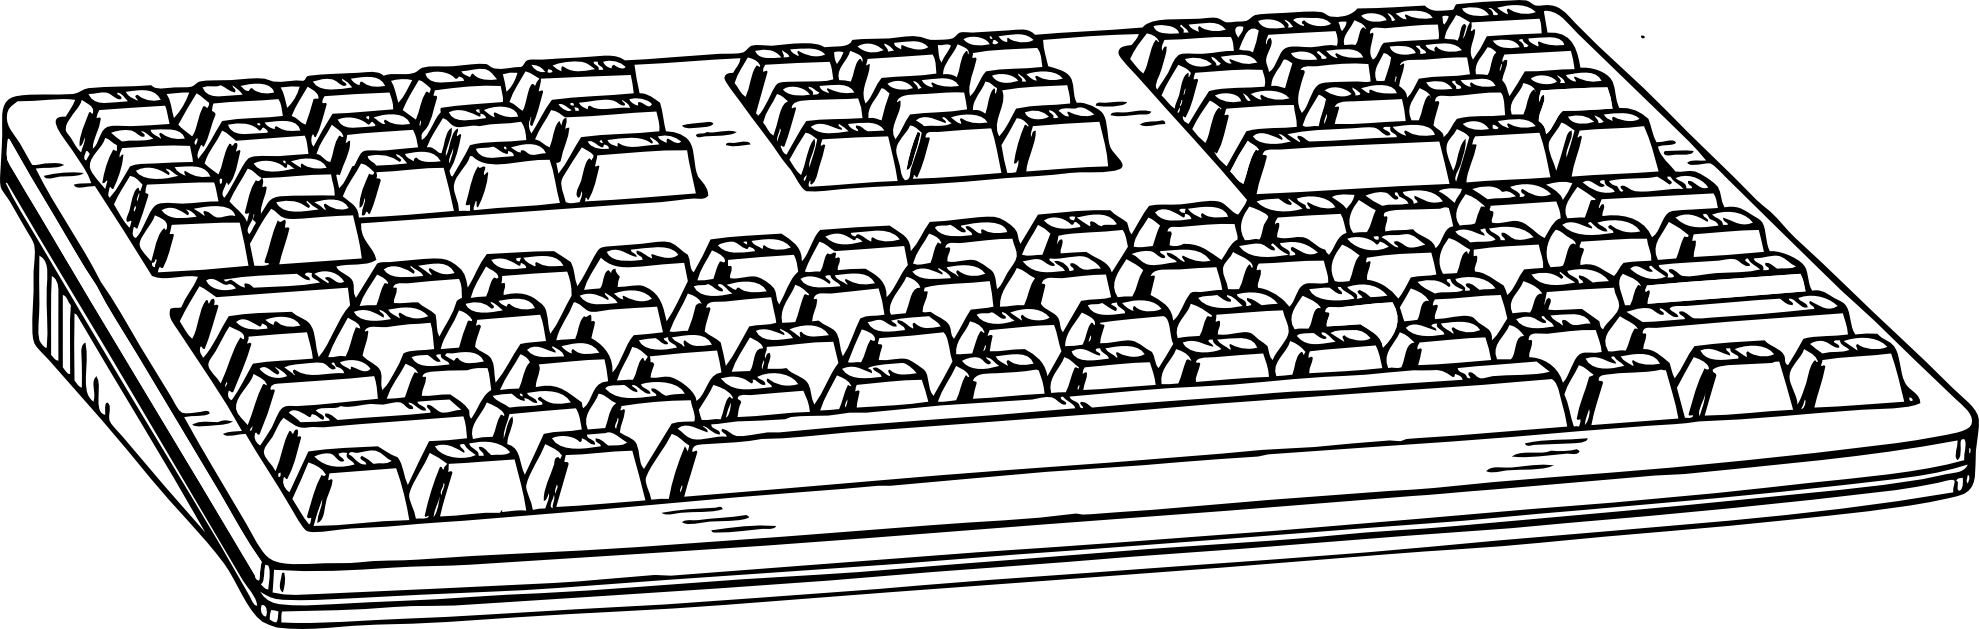 clipart transparent stock Computer keyboard clipart black and white.  collection of high